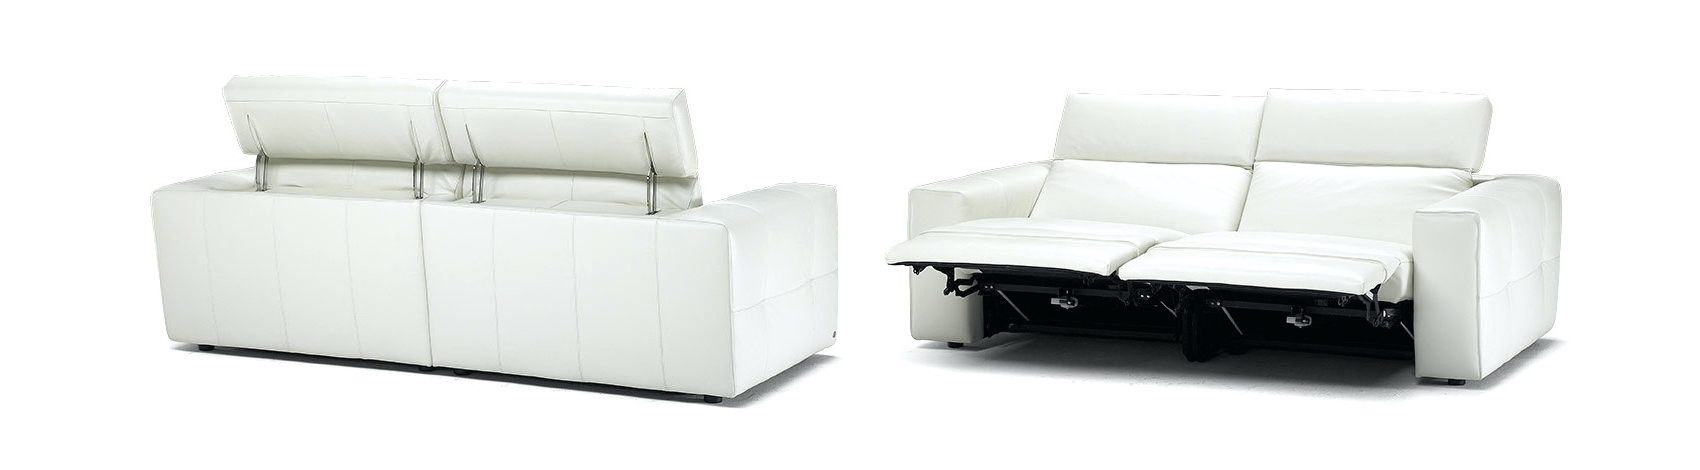 natuzzi lounge chair with headrest 15 best collection of zeta chaise chairs ideas regard to fashionable